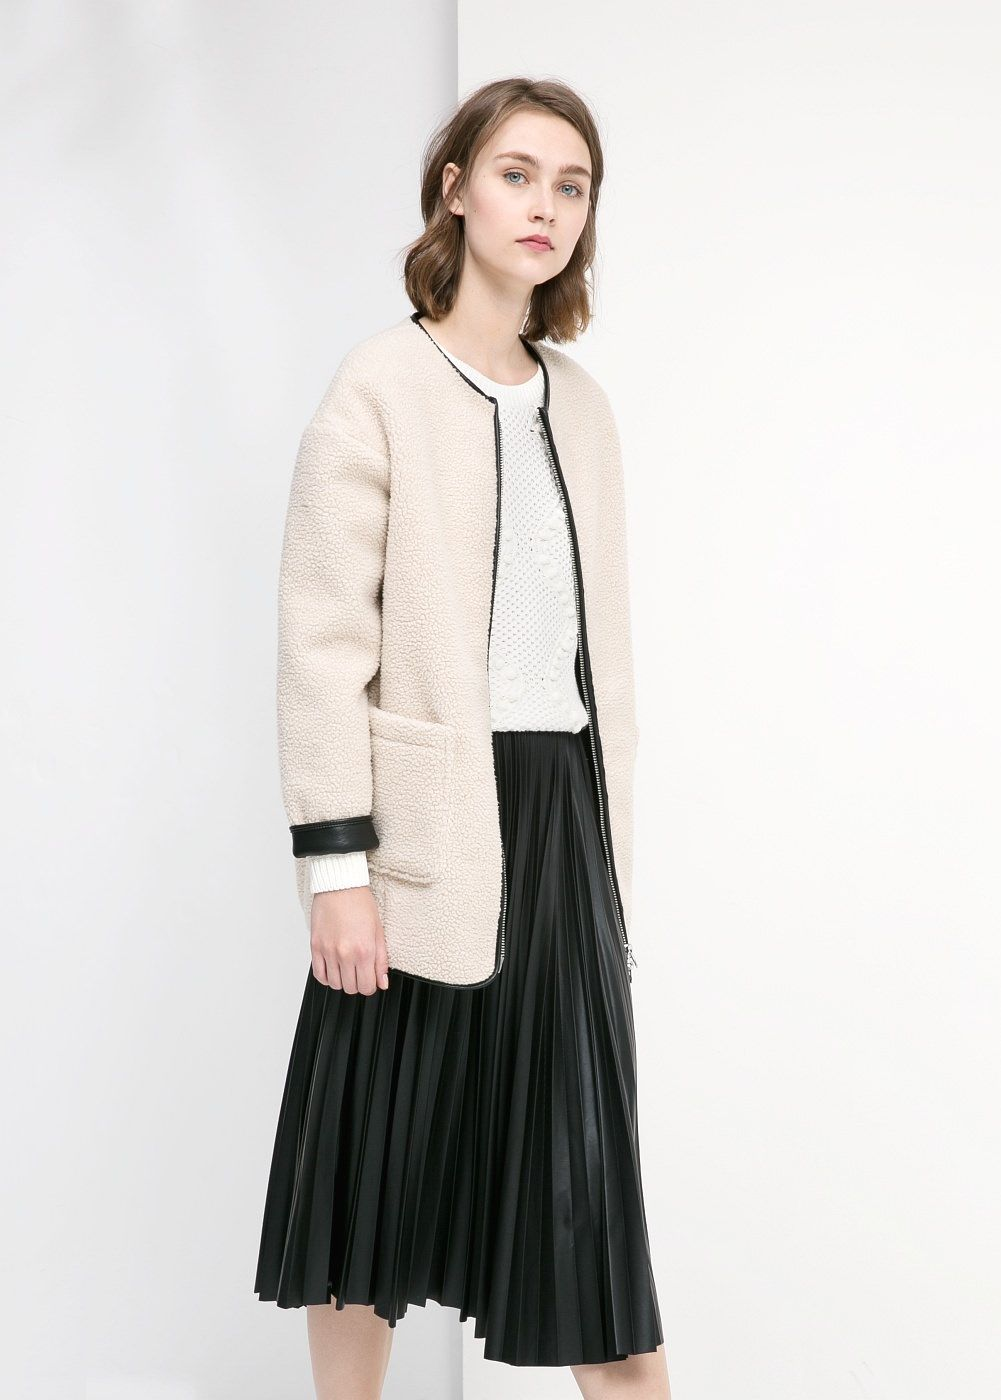 Faux shearling cocoon coat - Women   Jackets and Outerwear ... ccf71cac10e8